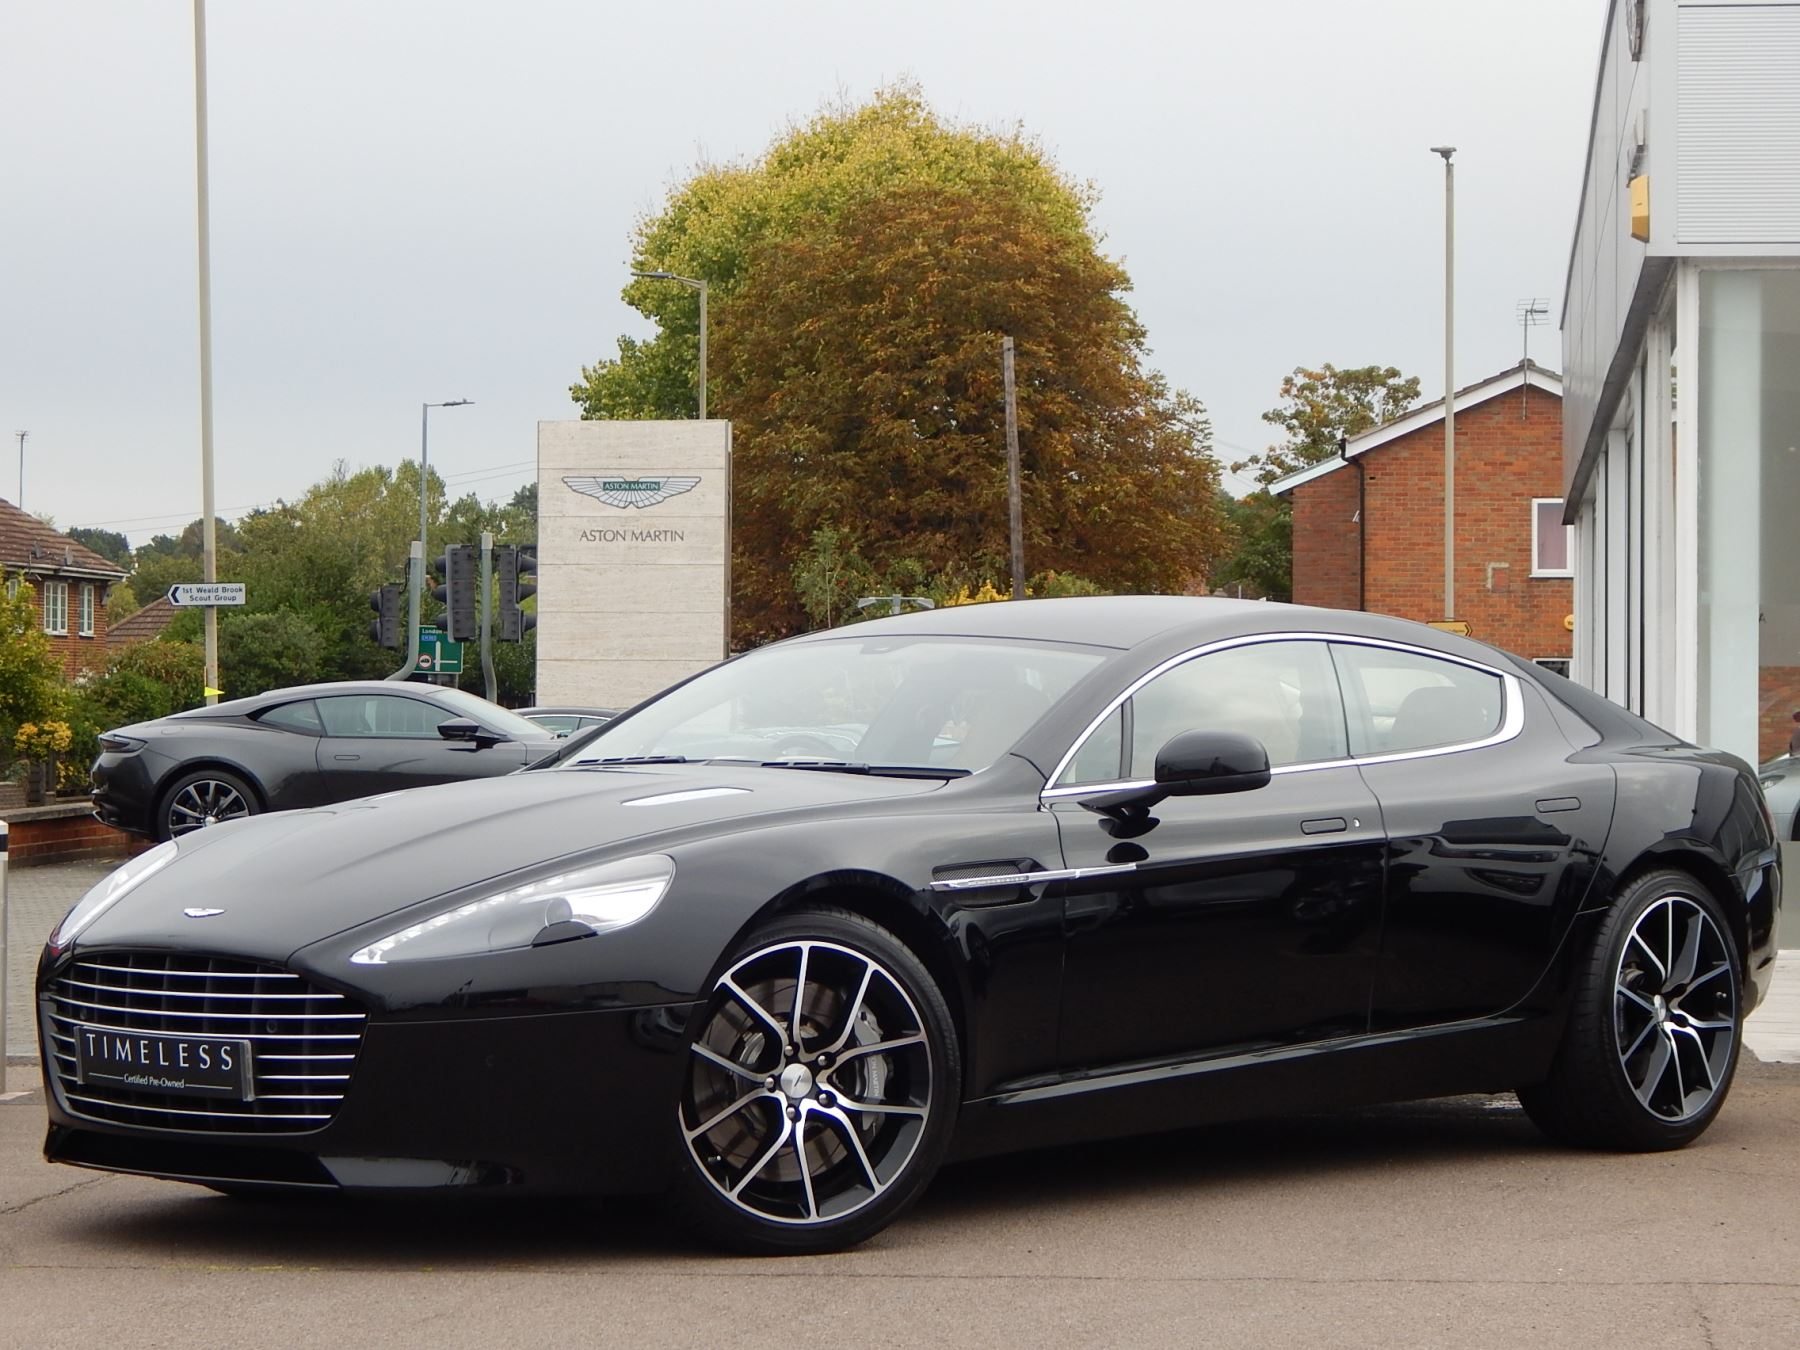 Aston Martin Rapide S V12 [552] 4dr Touchtronic III 5.9 Automatic 5 door Saloon (2016) image